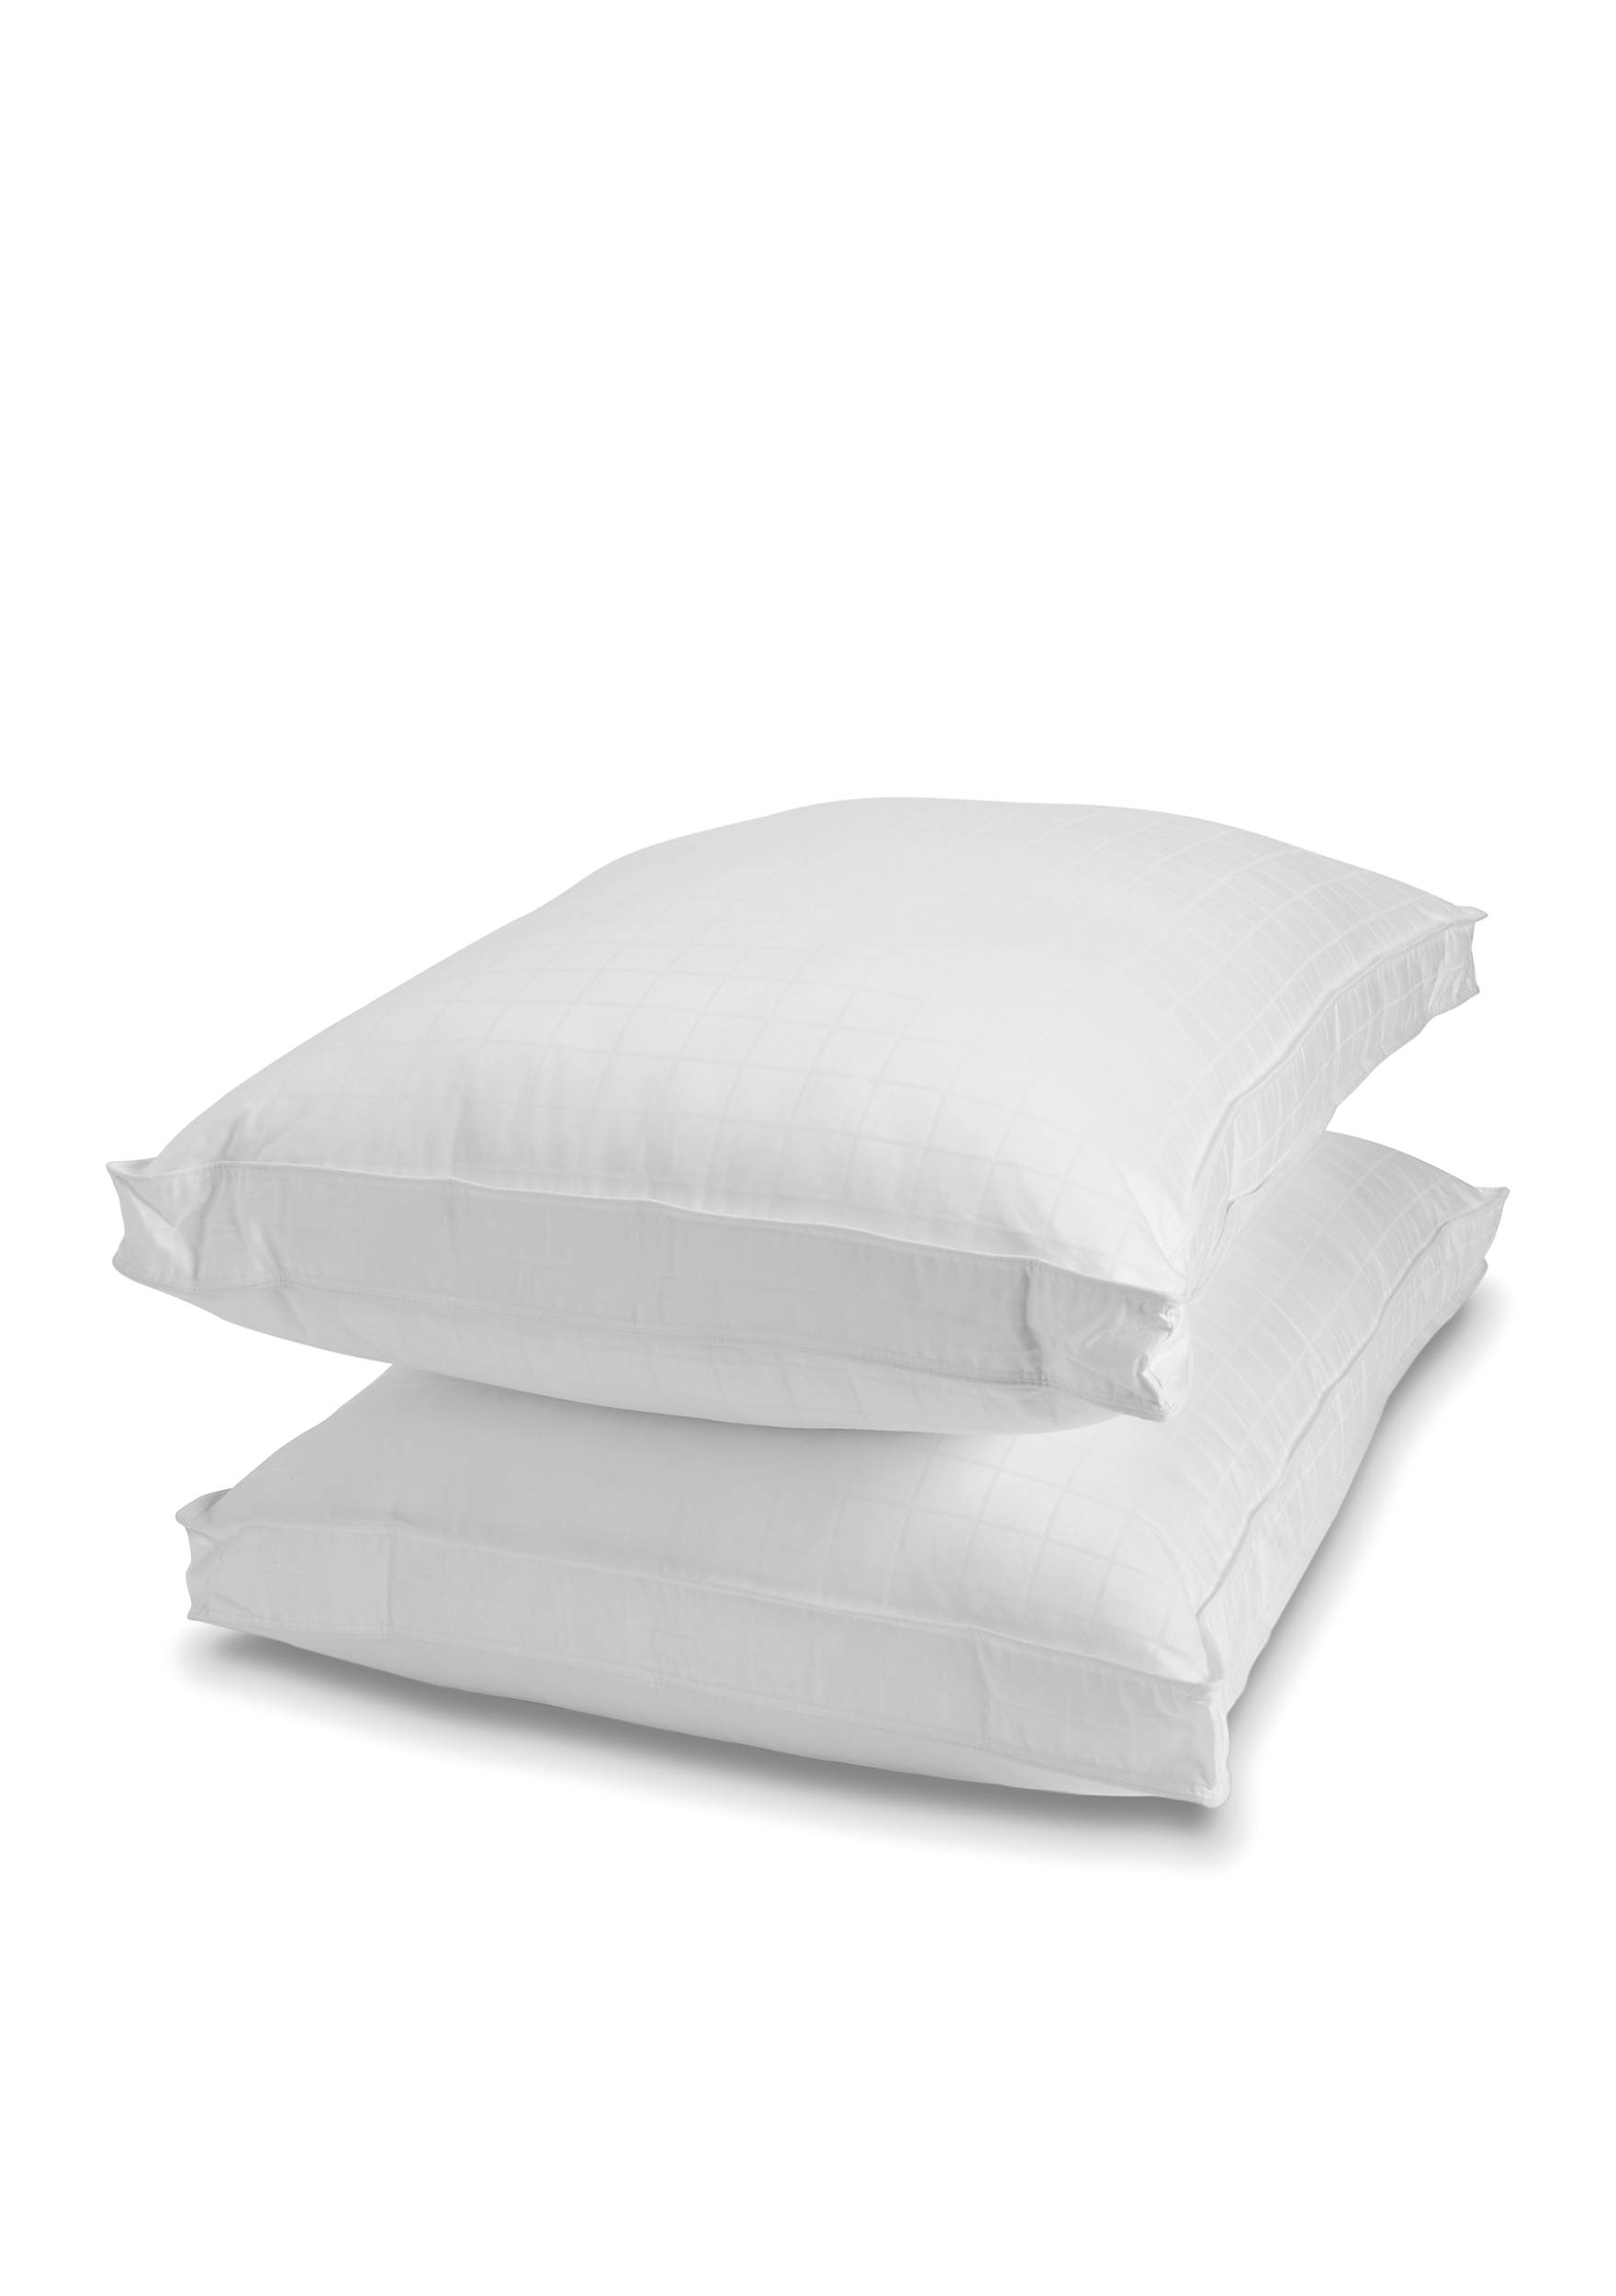 itm bed collection plush pack hypoallergenic hotel down pillow pillows alternative white